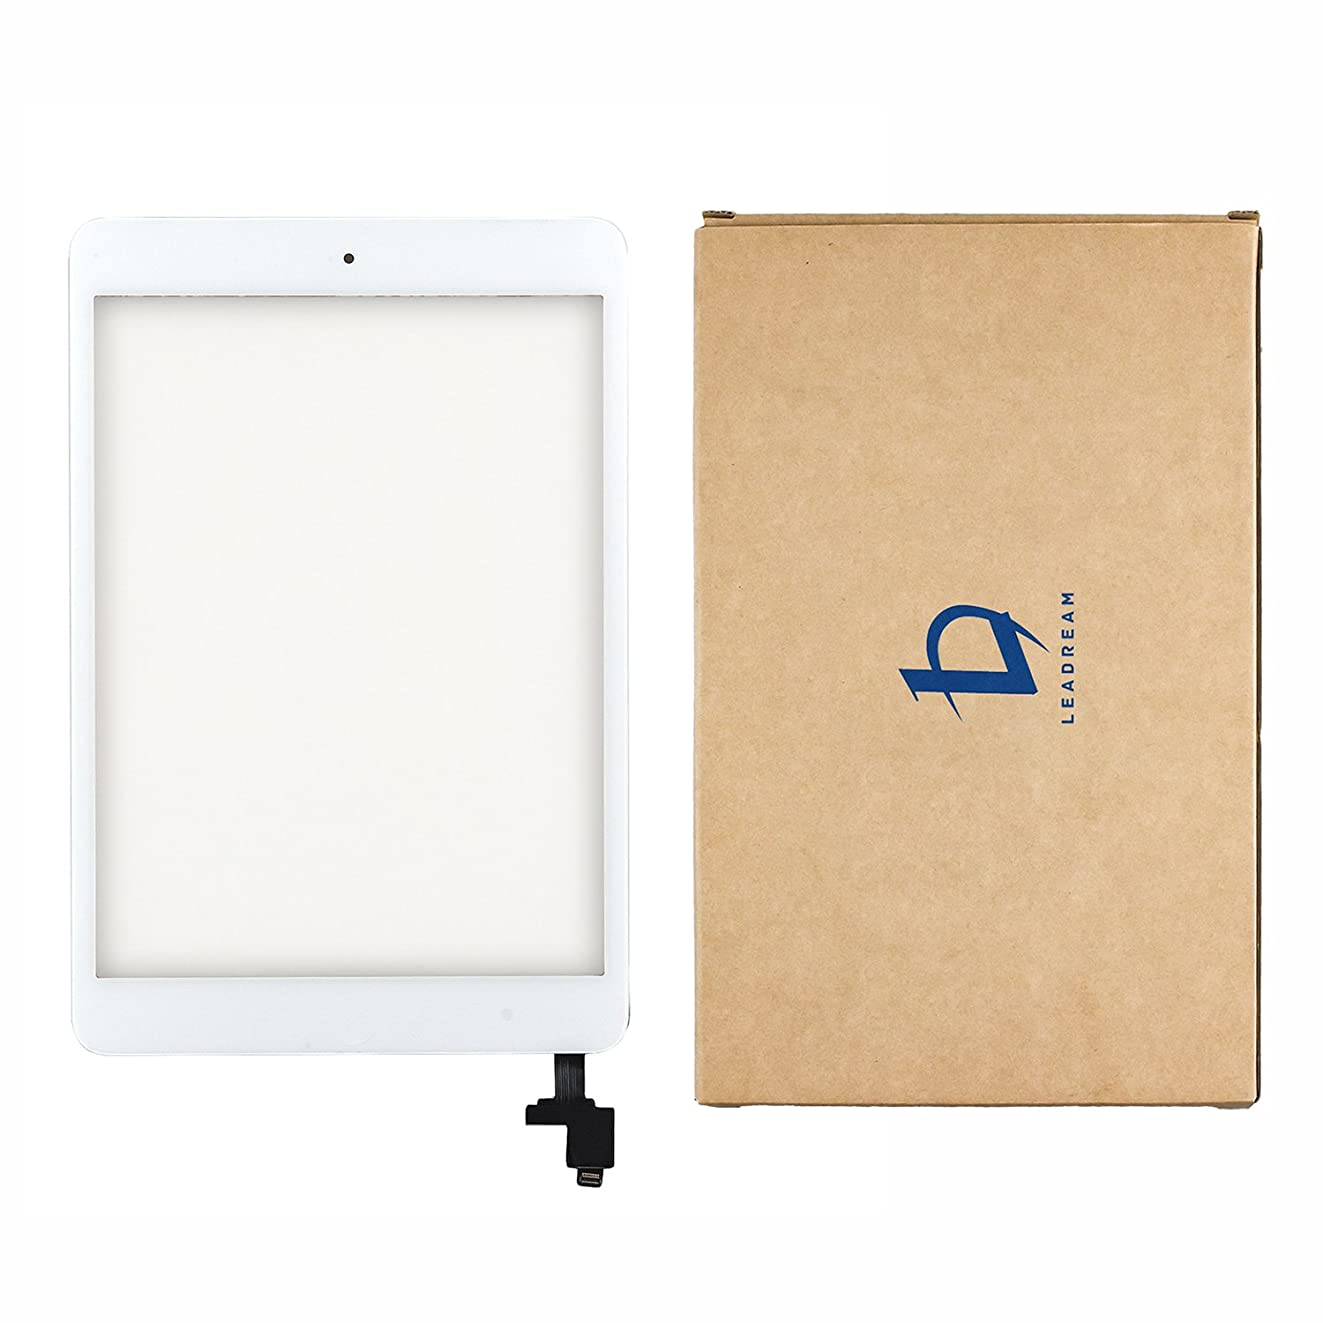 White Glass Screen Digitizer Complete Full Assembly for iPad Mini & Mini 2 with IC Chip, Home Button, OEM Adhesive